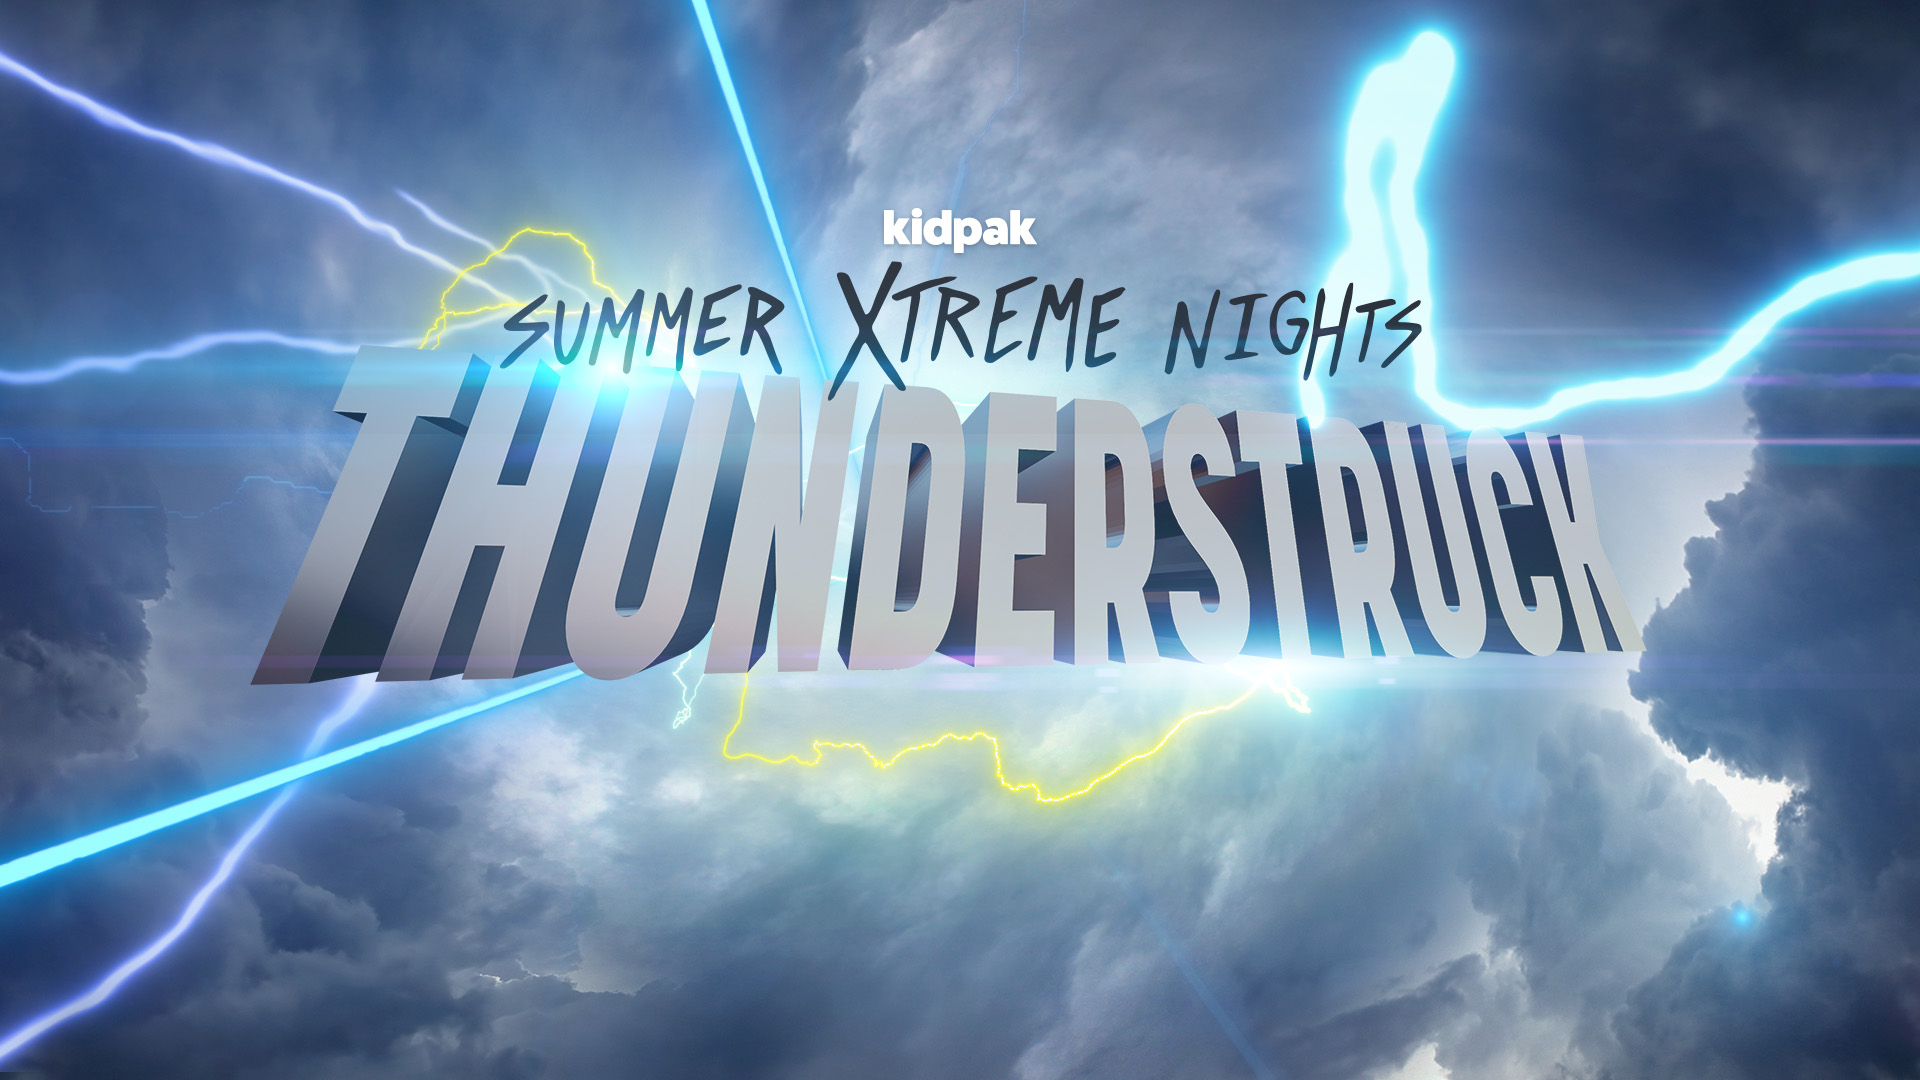 Summer Xtreme Nights Braselton at the Braselton campus